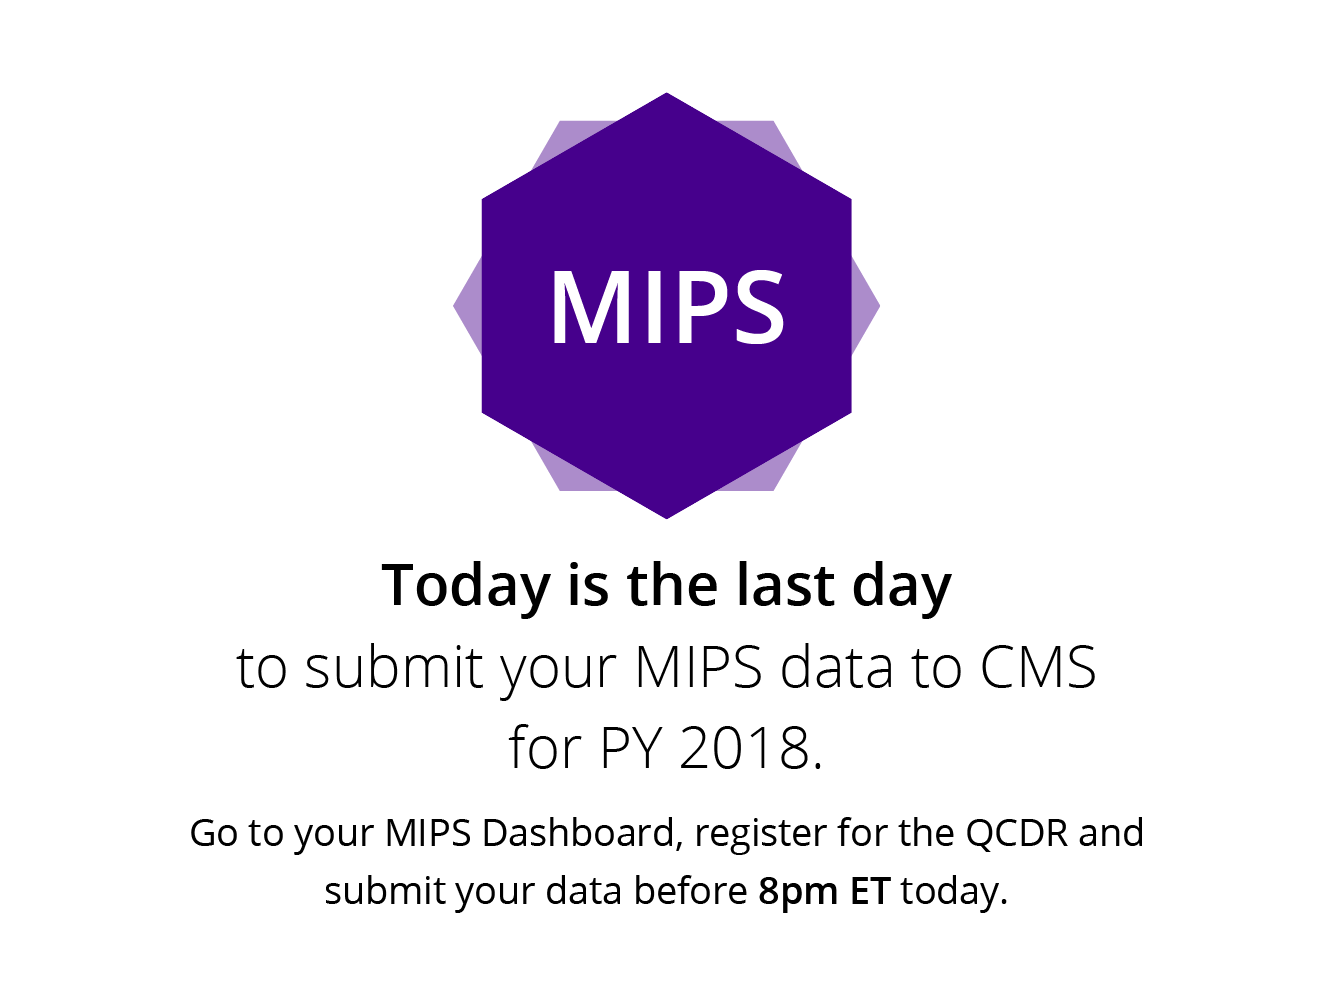 Today is the last day to submite your MIPS data to CMS for PY 2018. Go to your MIPS Dasboard, register for the QCDR and submit your data before 8pm ET today.